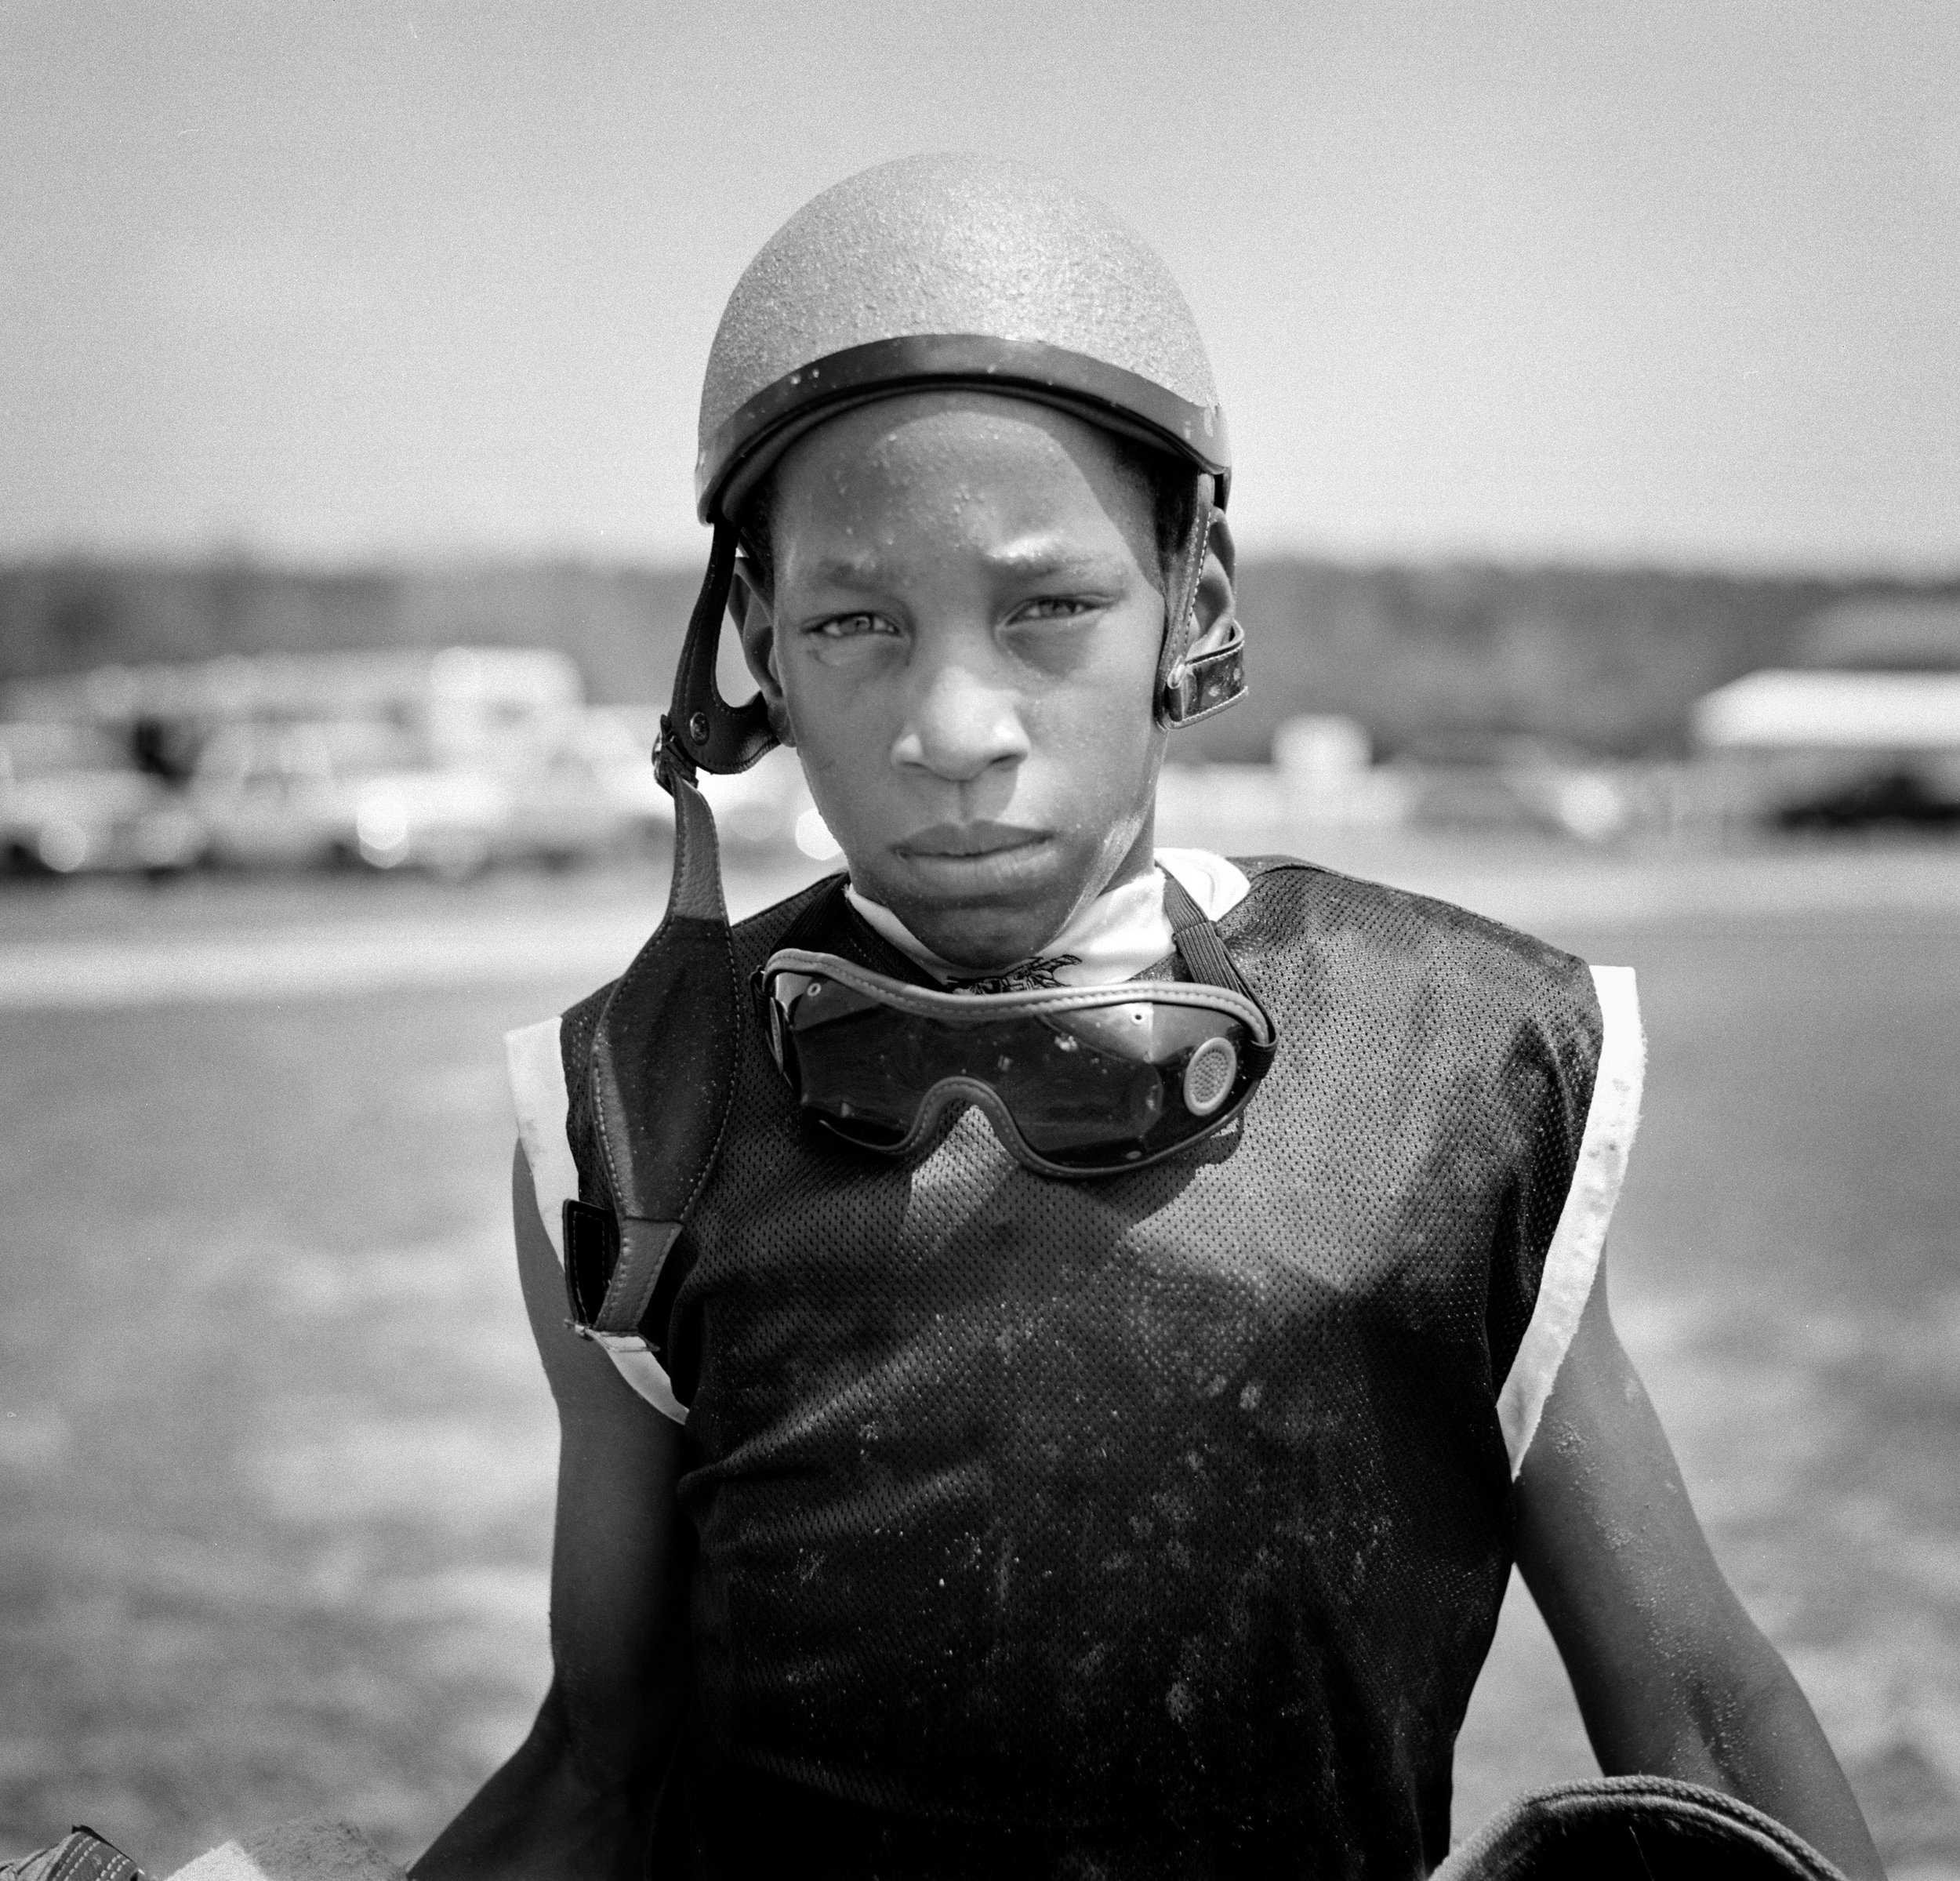 BT young jockey.jpg